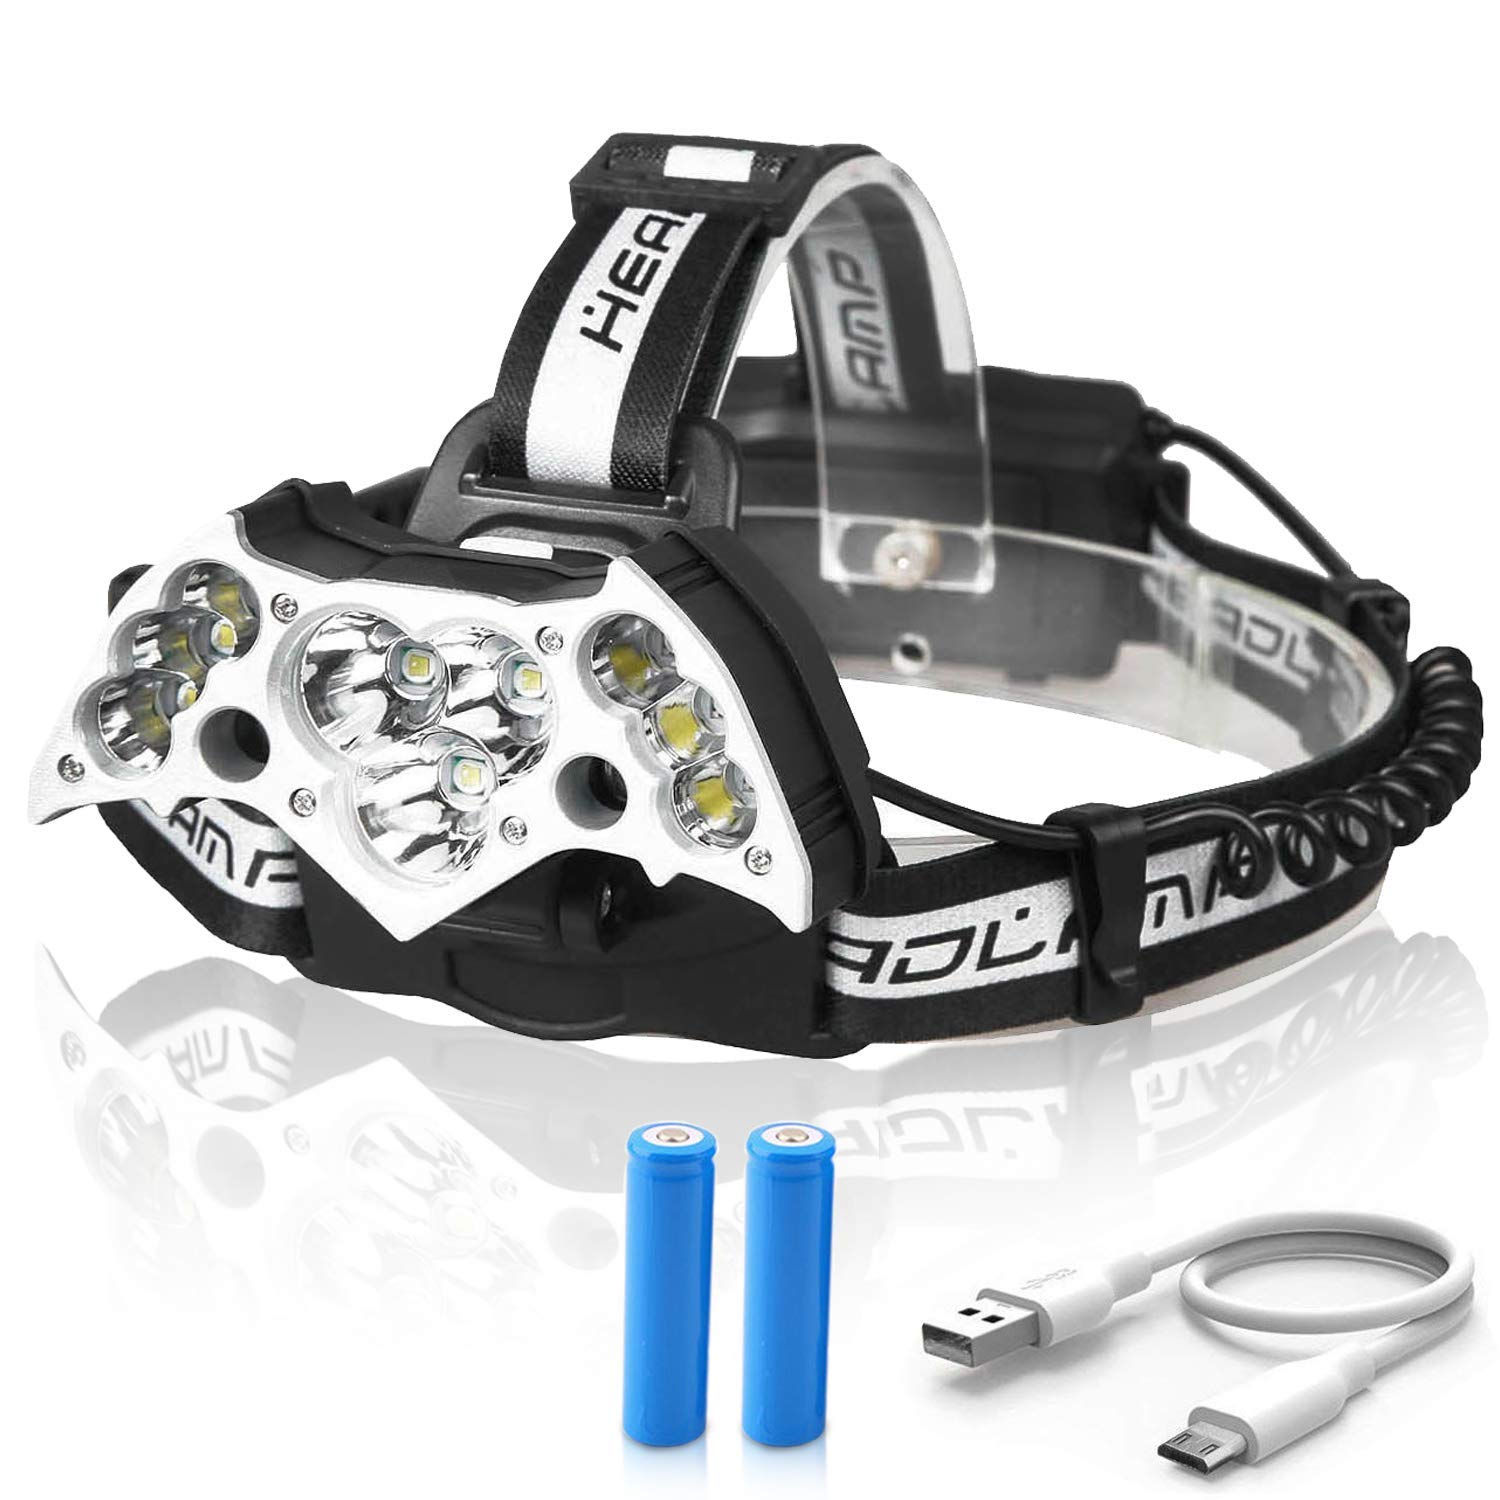 Rechargeable Headlamp Flashlight, MOCCO Waterproof Powerful 11 LED T6 Headlight High Lumen Super Bright Rechargeable Head Torch for Camp Emergency Light Fishing with Battery, USB Cable